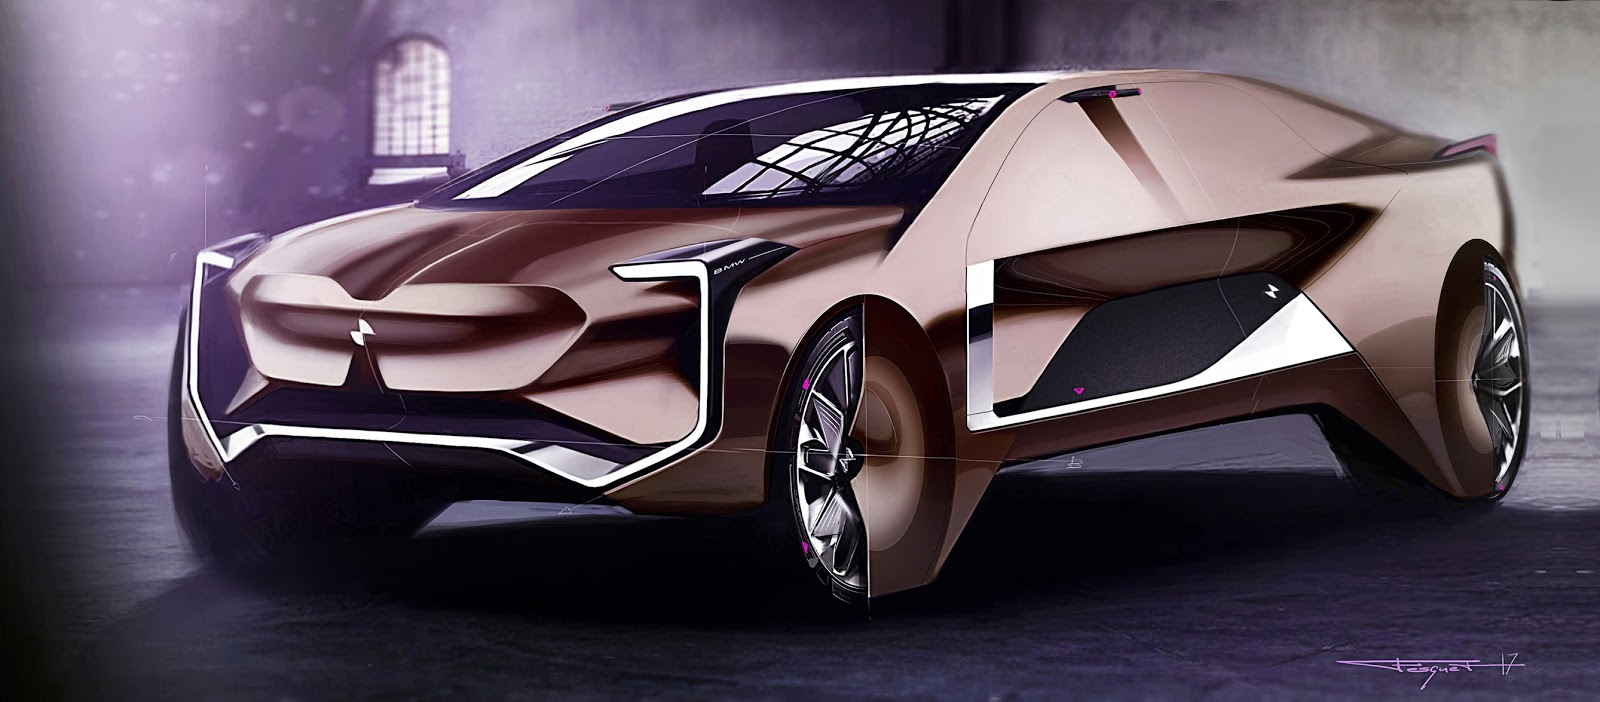 hight resolution of bmw x8 gran coupe luxury vision by julien fesquet